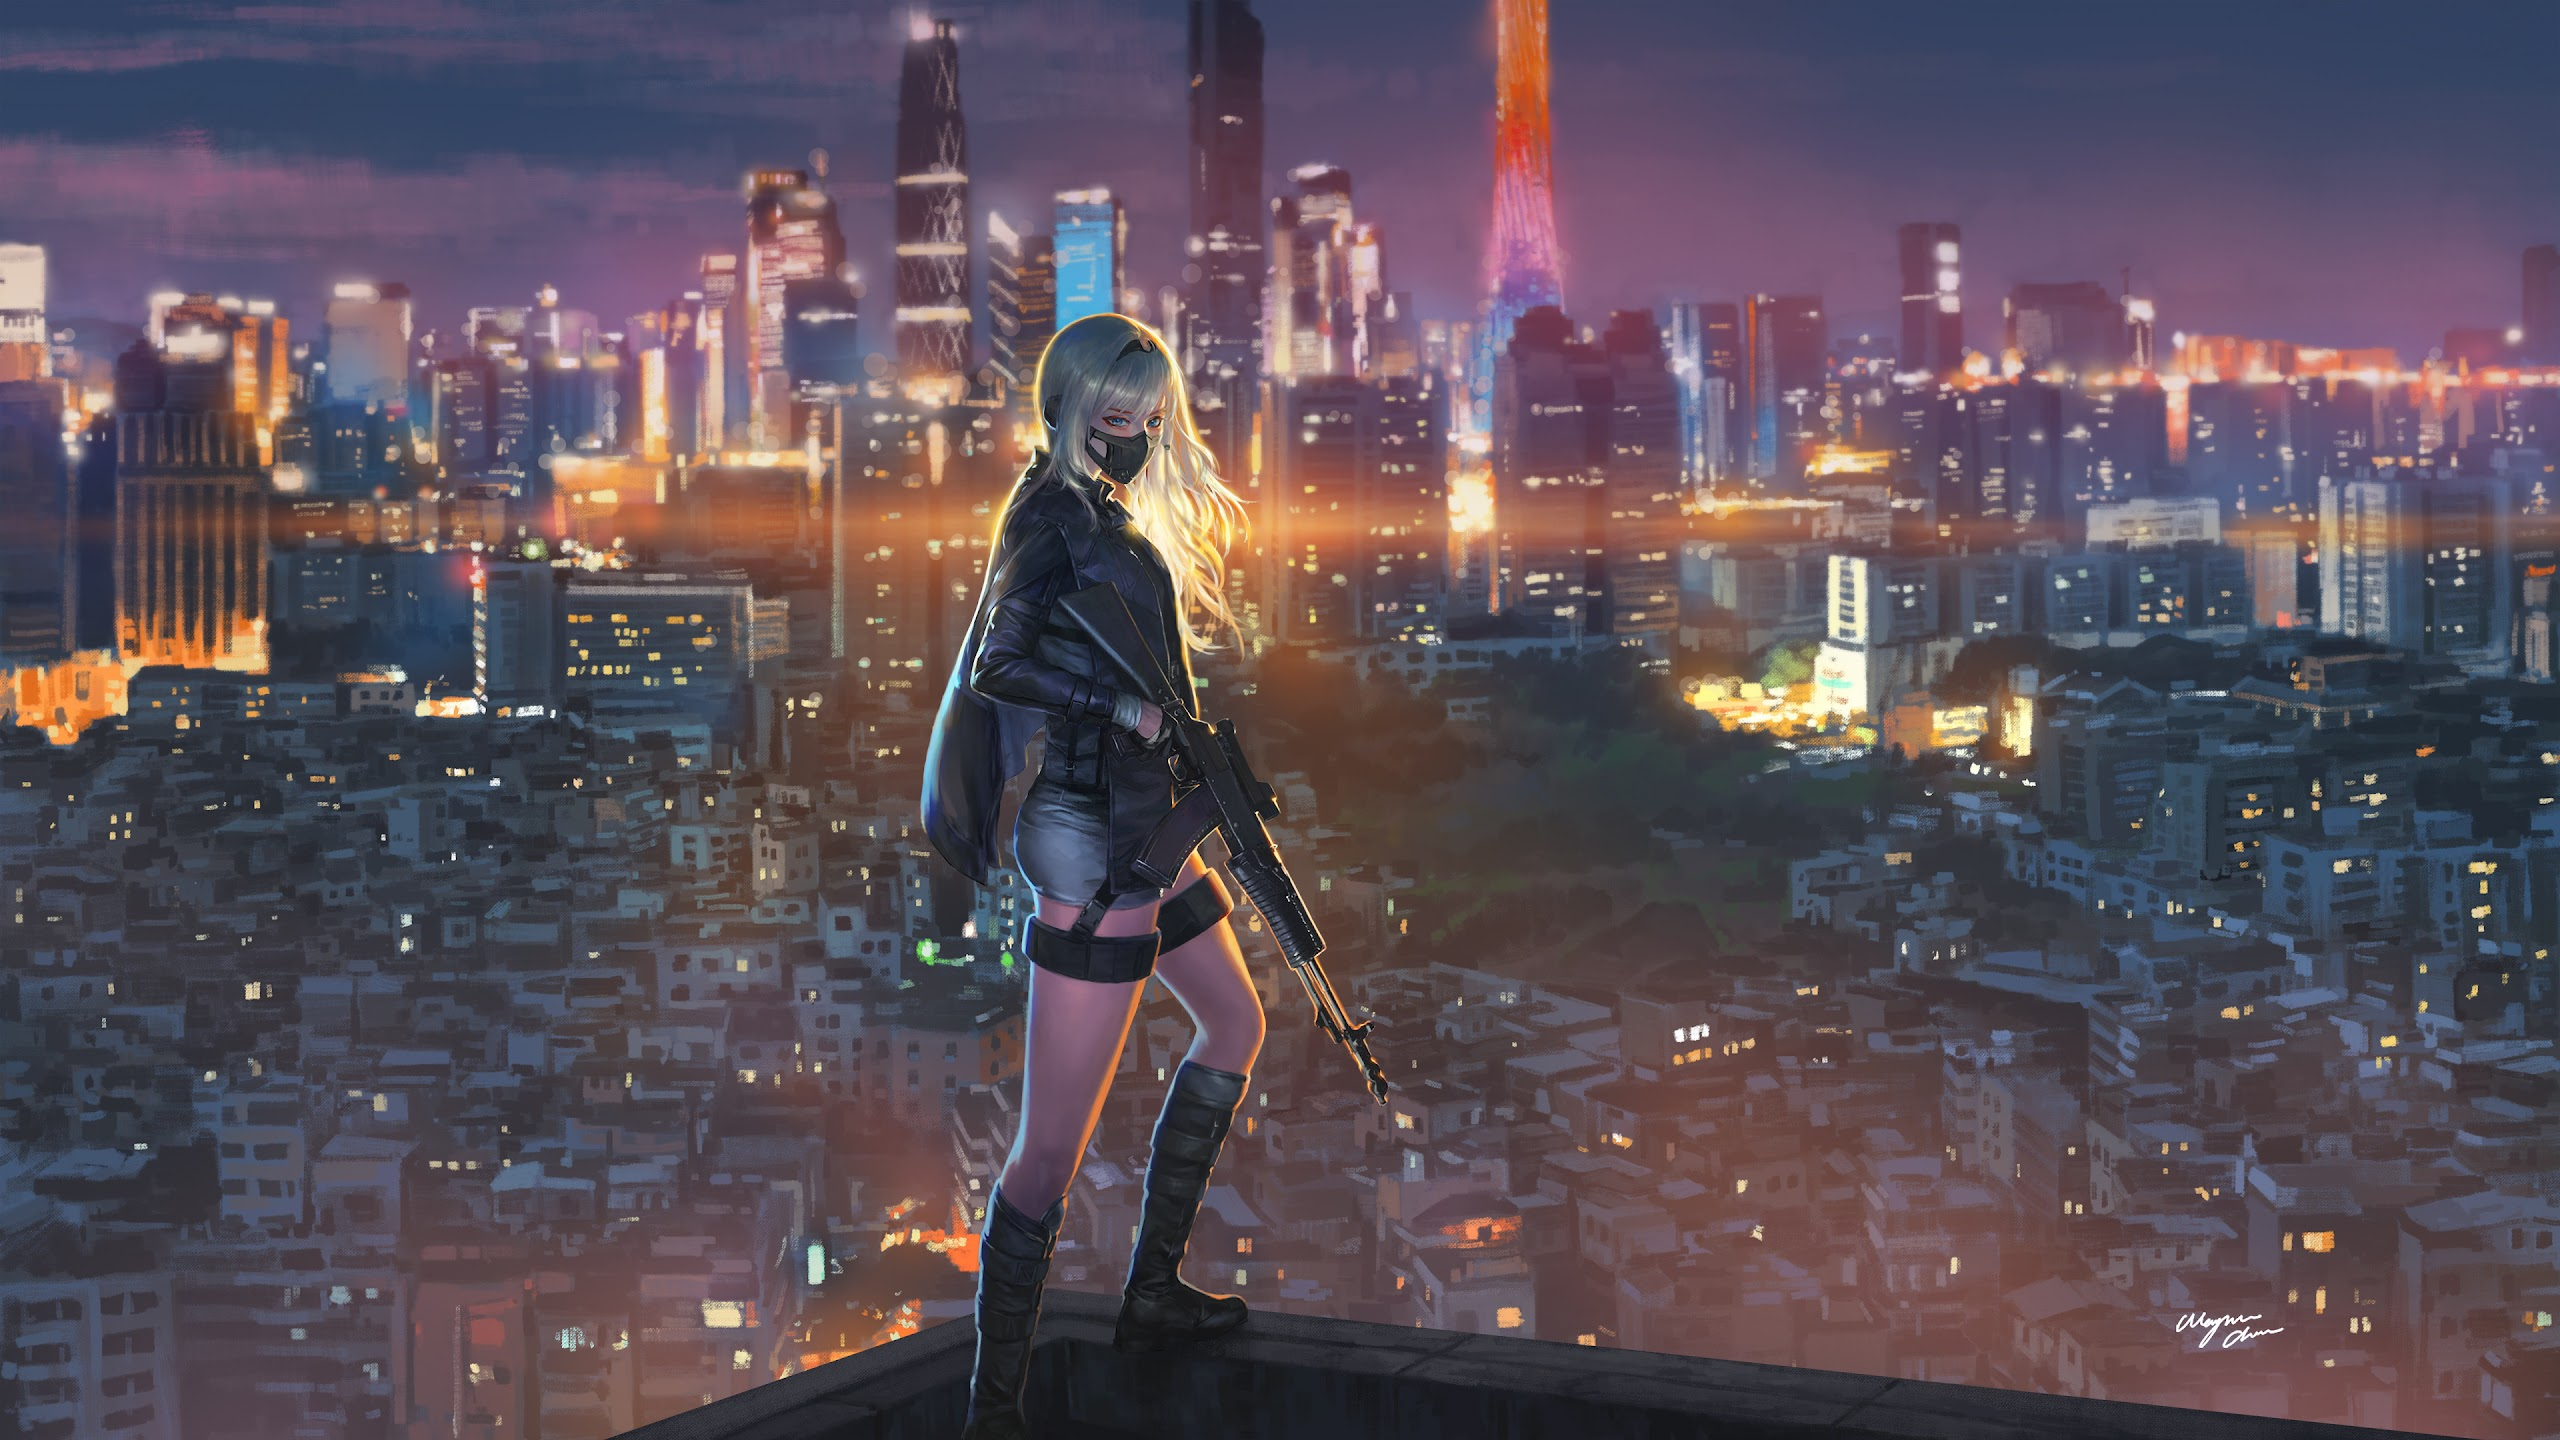 anime girl rifle city night uhdpaper.com 4K 188